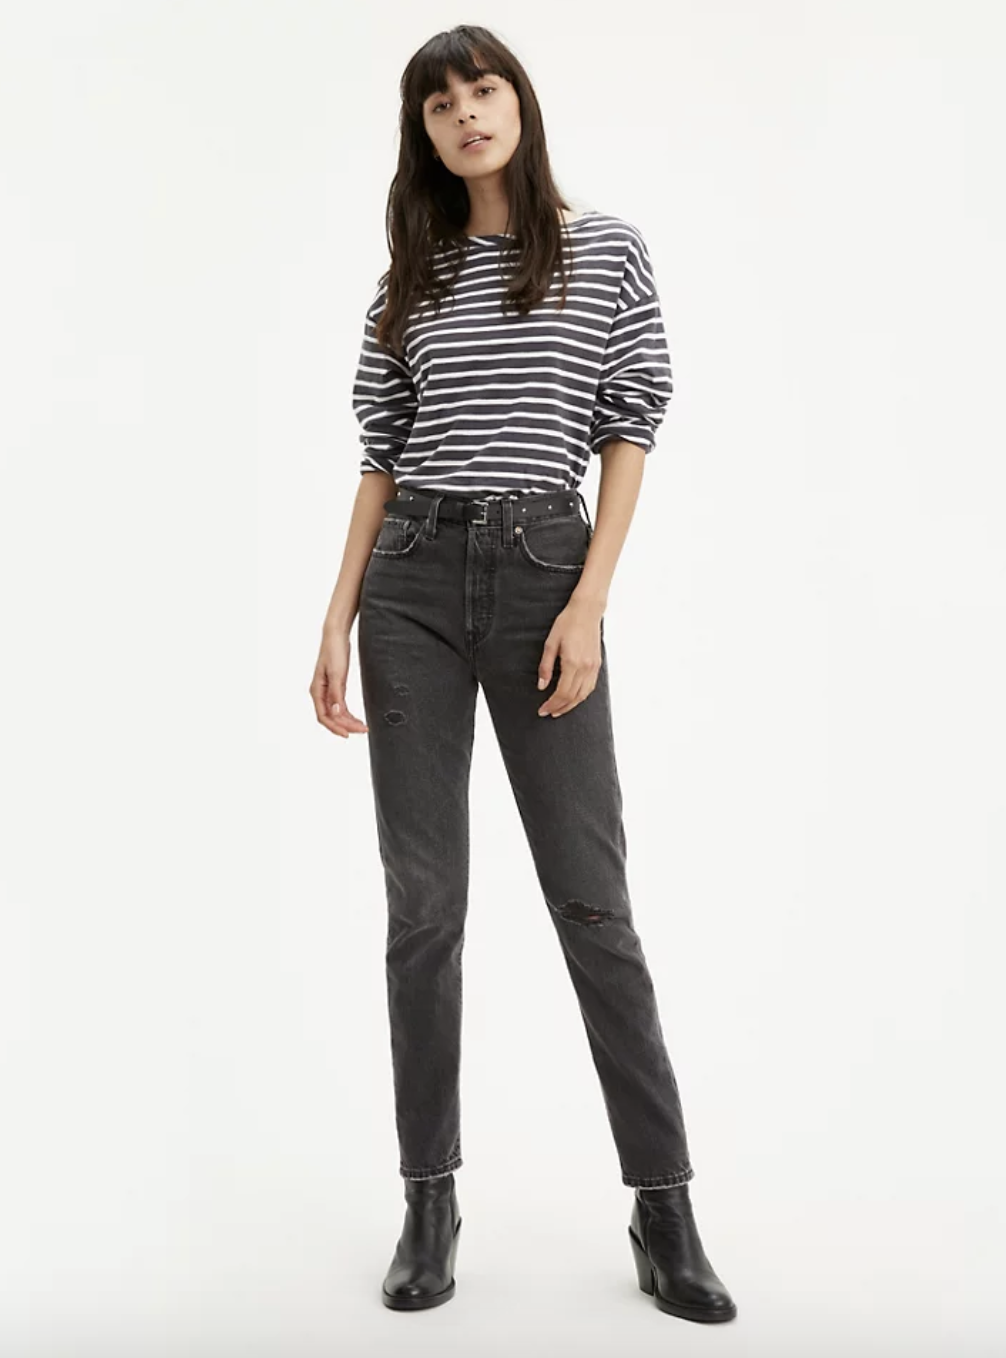 Model in high waisted black skinny jeans